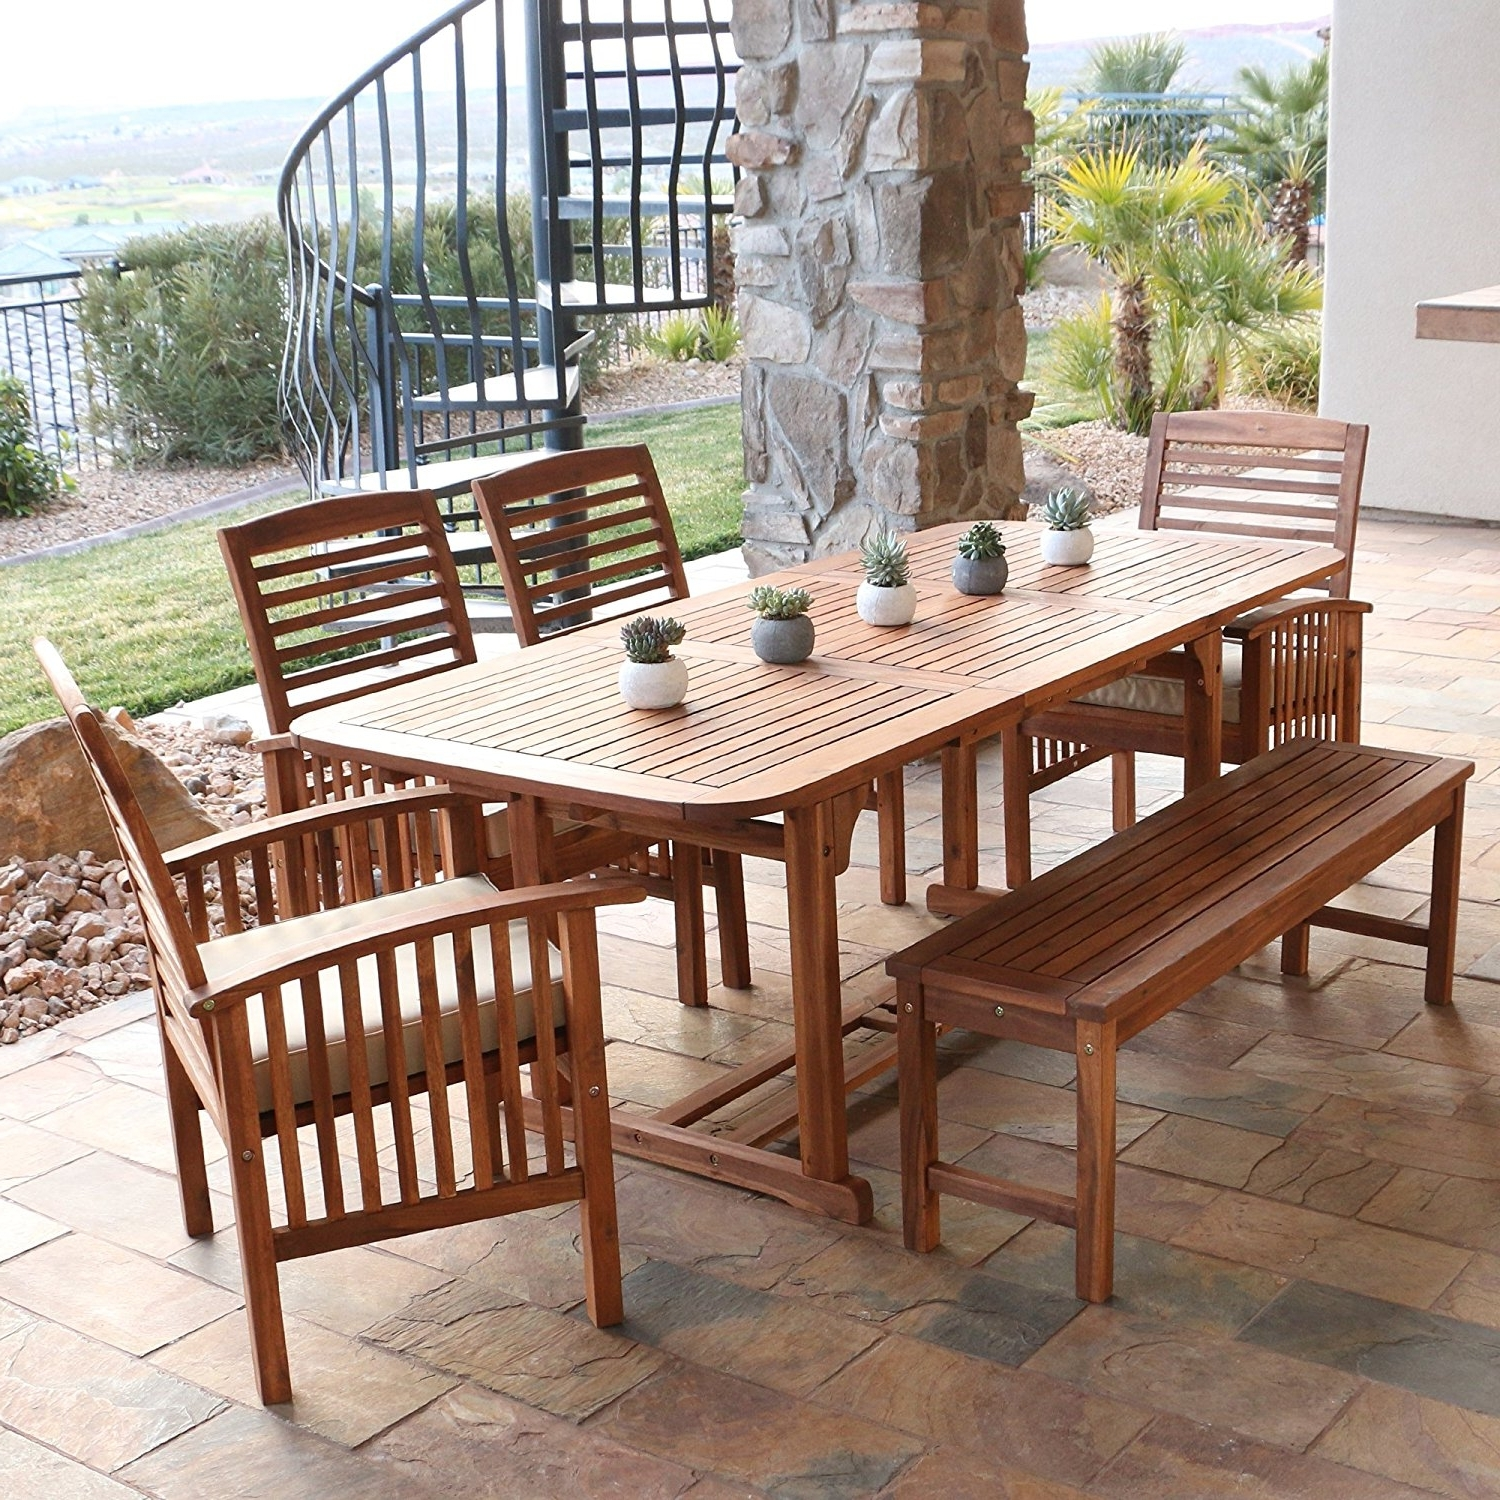 Wayfair Patio Furniture Discount Outdoor Furniture Patio Furniture For Most Popular Wayfair Outdoor Patio Conversation Sets (View 14 of 15)